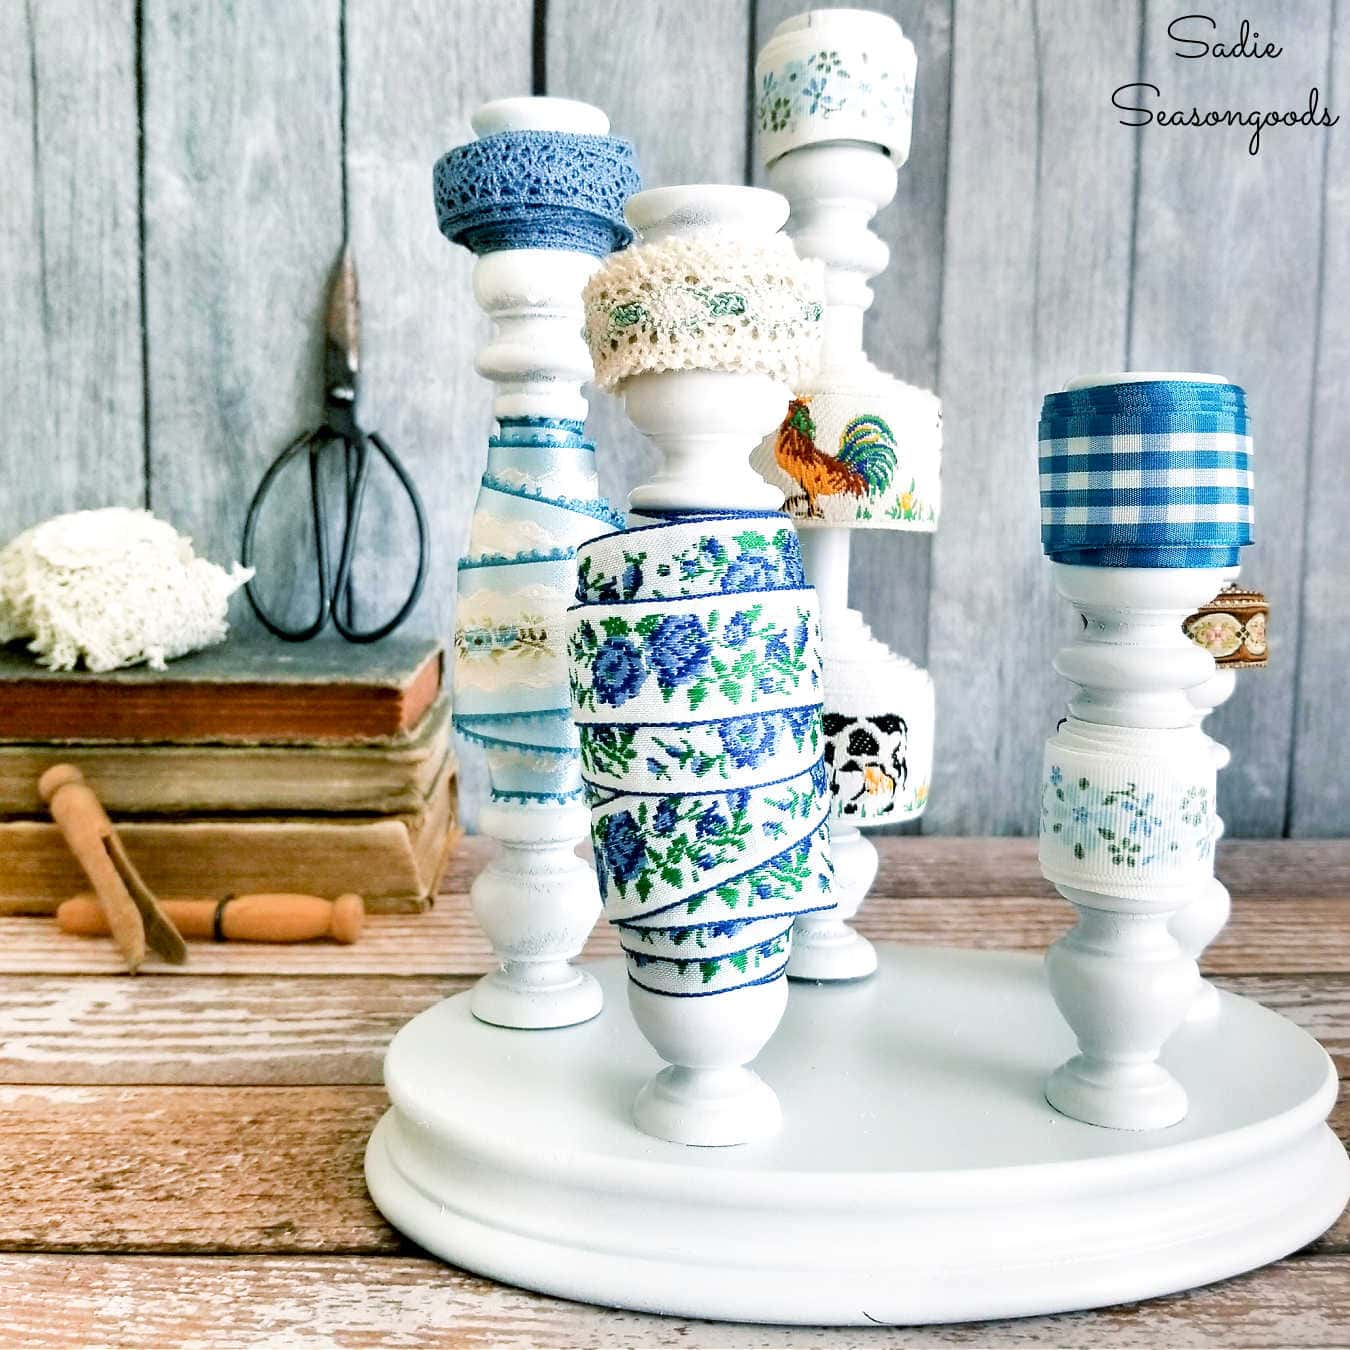 Ribbon Organizer from a Wooden Candelabra